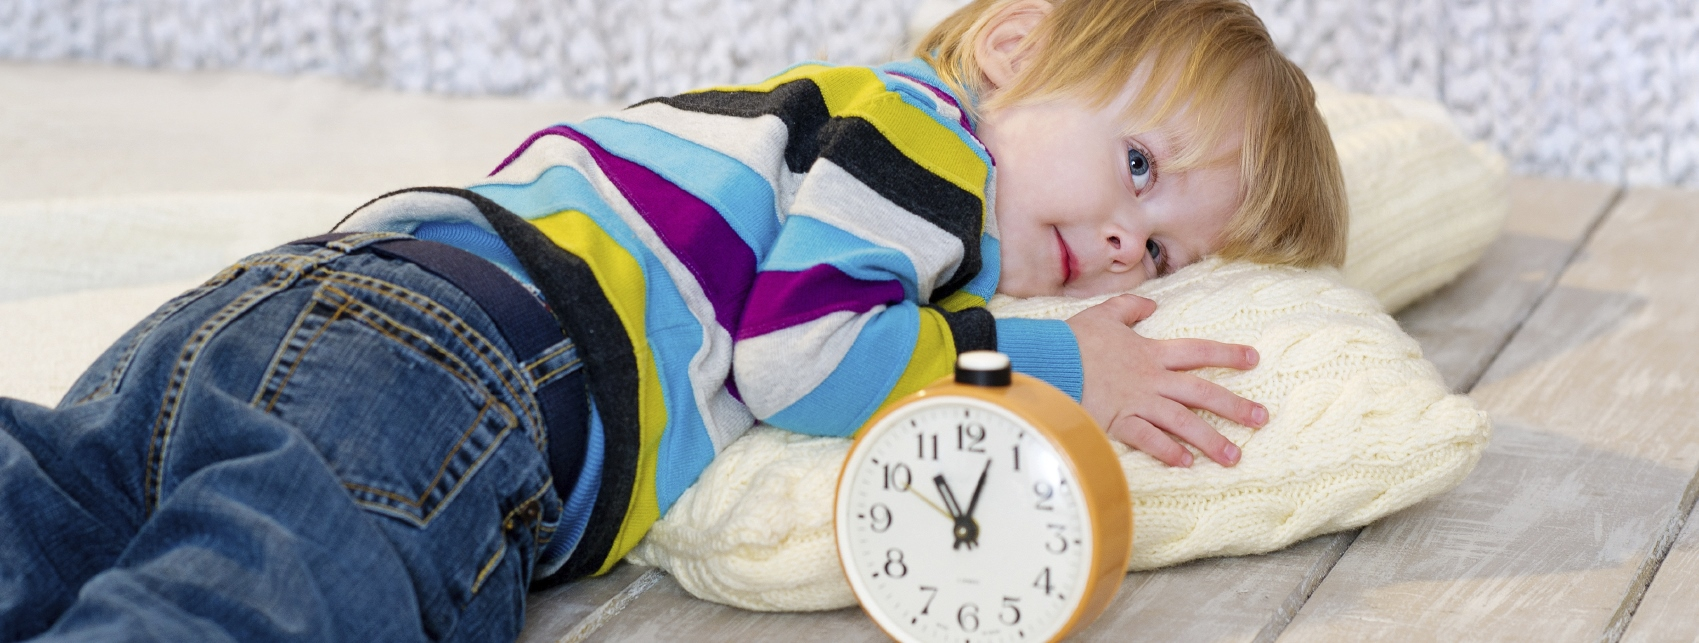 Your Child Learning to Tell Time?}